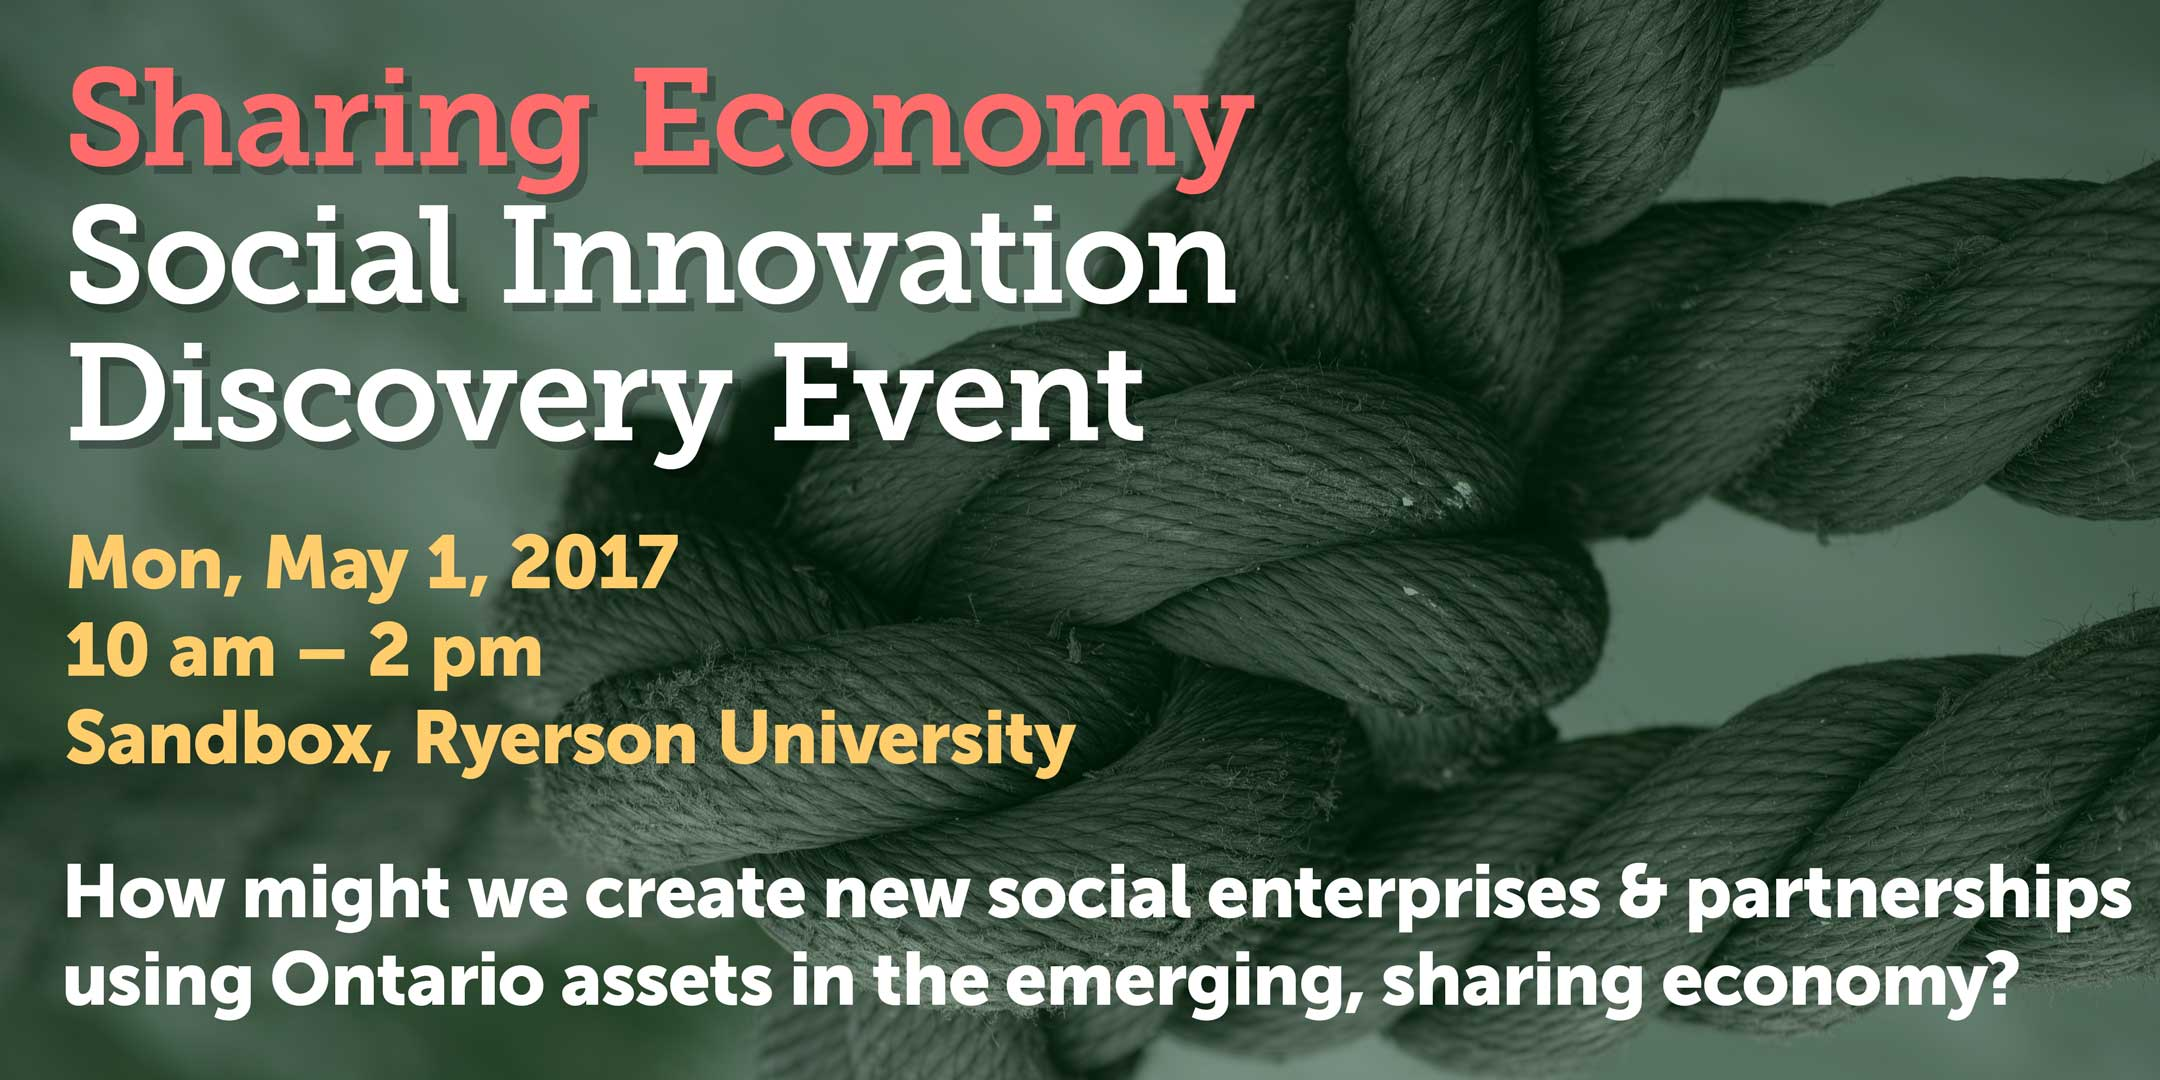 Sharing Economy Social Innovation Discovery Event